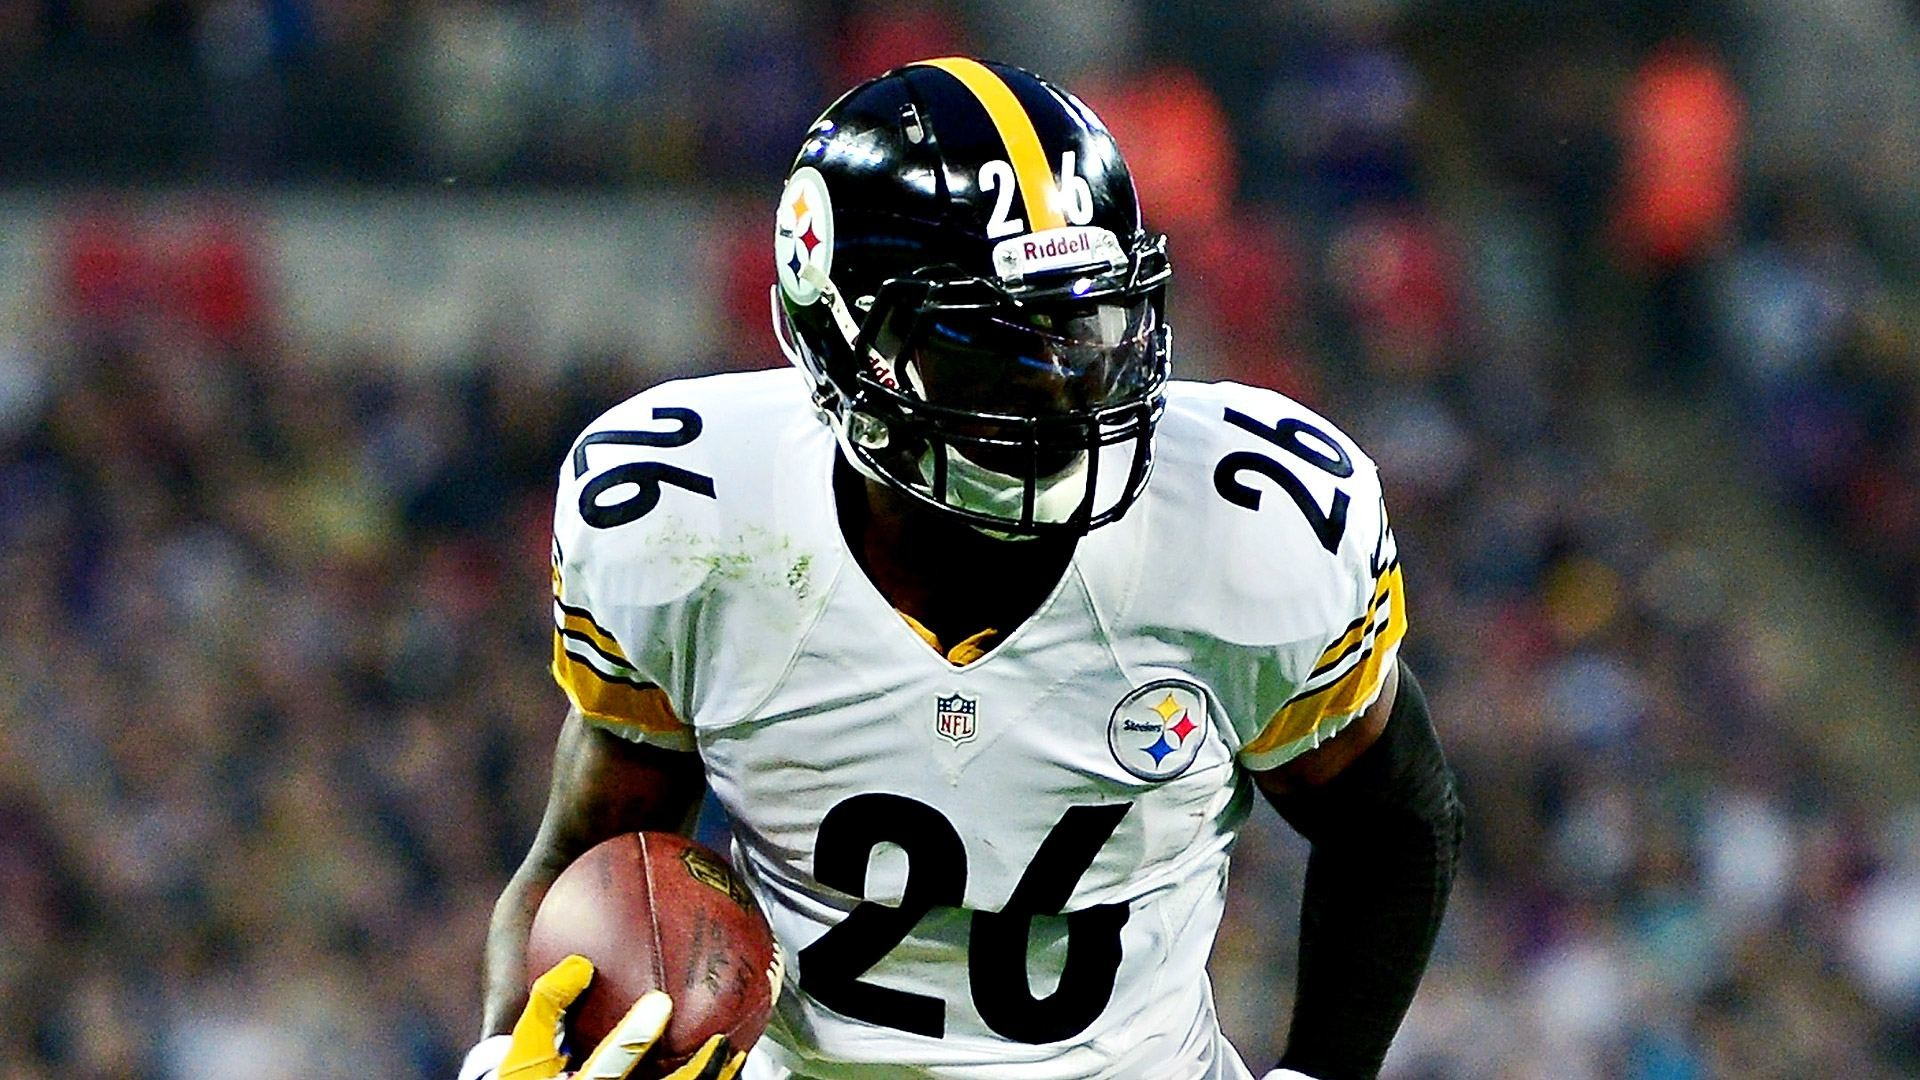 1920x1080 Le'Veon Bell wallpaperdownload free hd free download